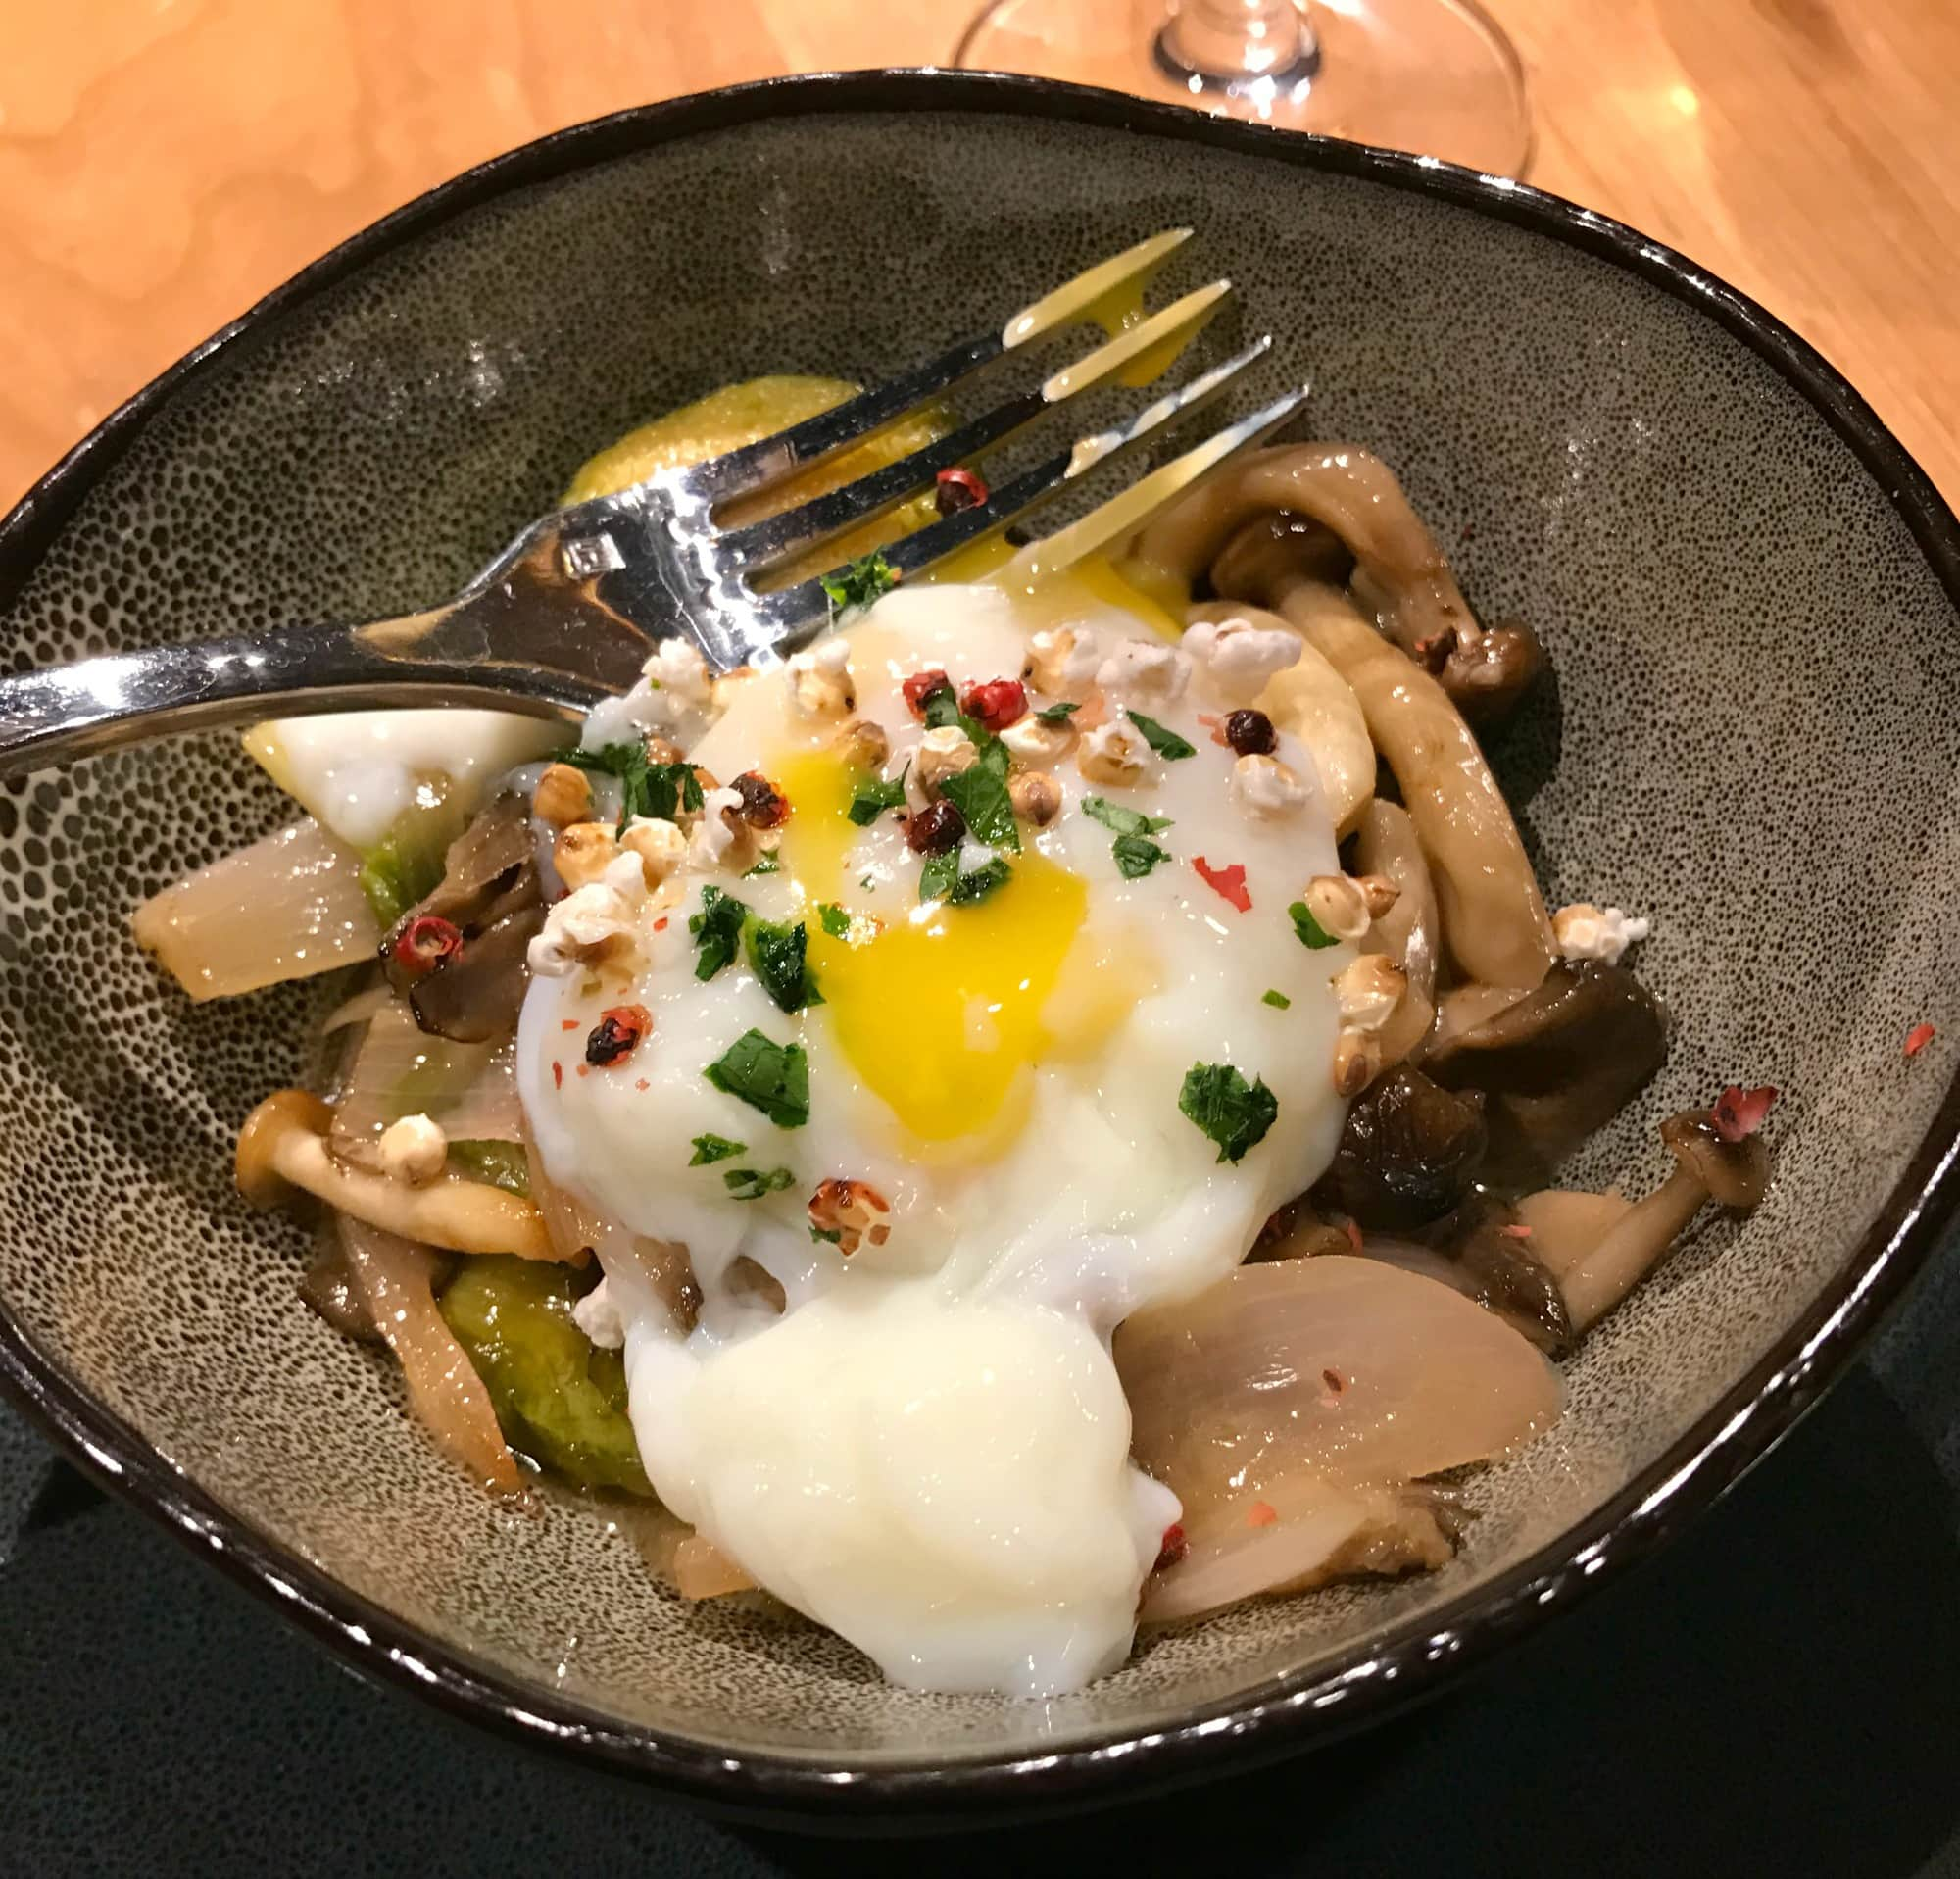 "My Organic Farm Egg starter at Manzanita served with wild mushroom ragout, Brussels sprout, sorghum ""popcorn"" and truffle"